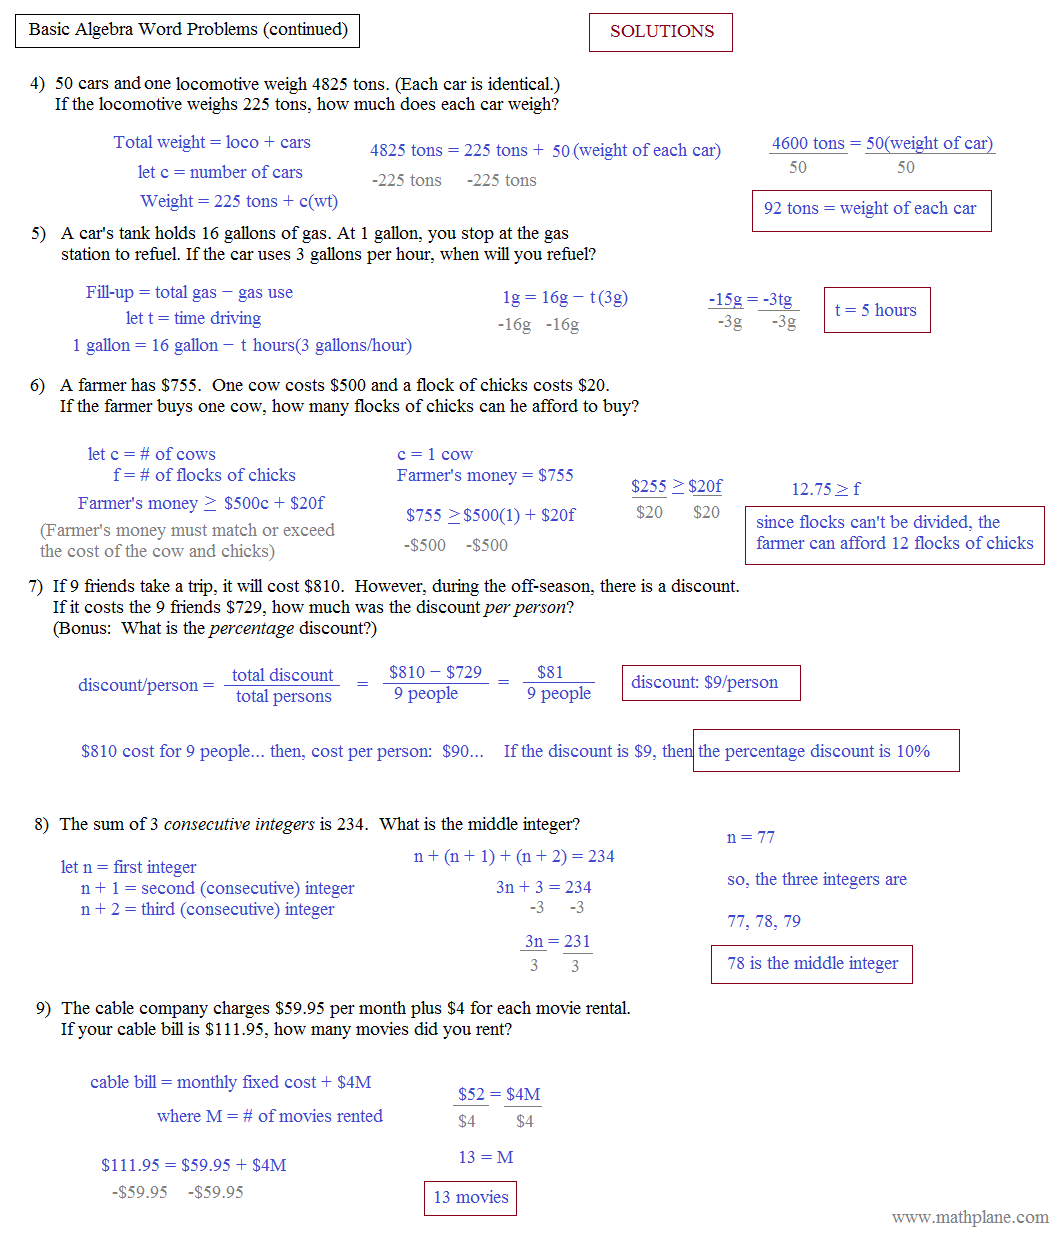 worksheet Linear Equations Word Problems Worksheet math plane algebra word problems basic 2 solutions